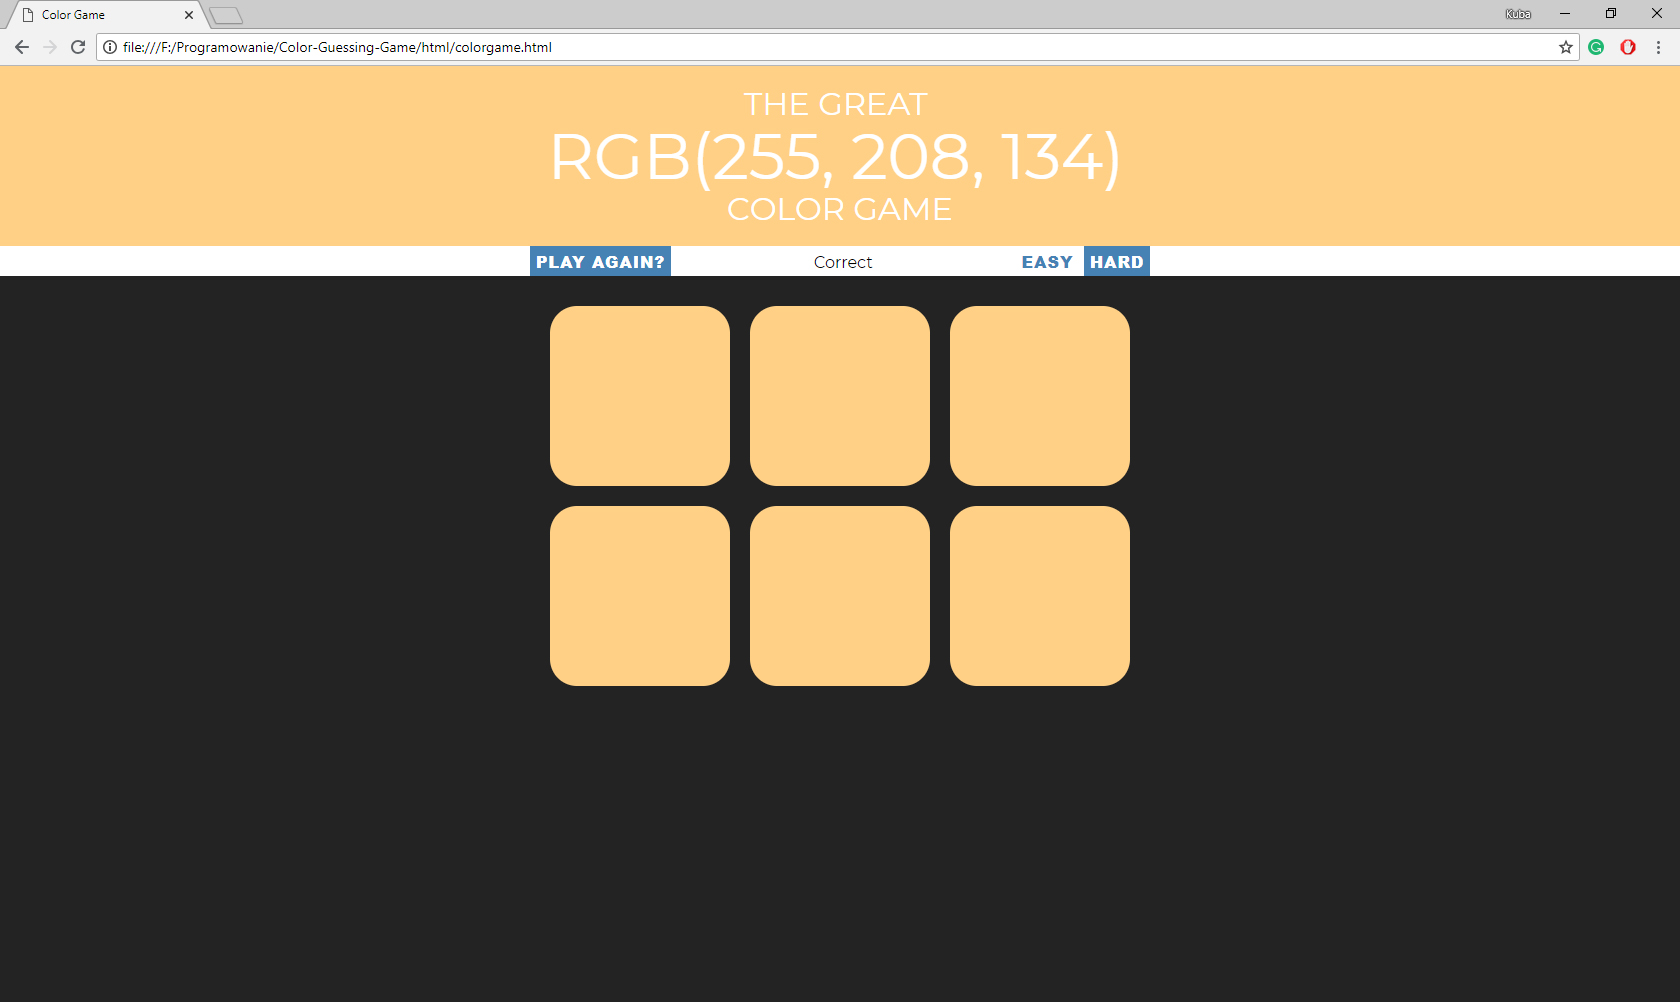 GitHub - KubaMikolajczyk/Color-Guessing-Game: Web game where you can ...